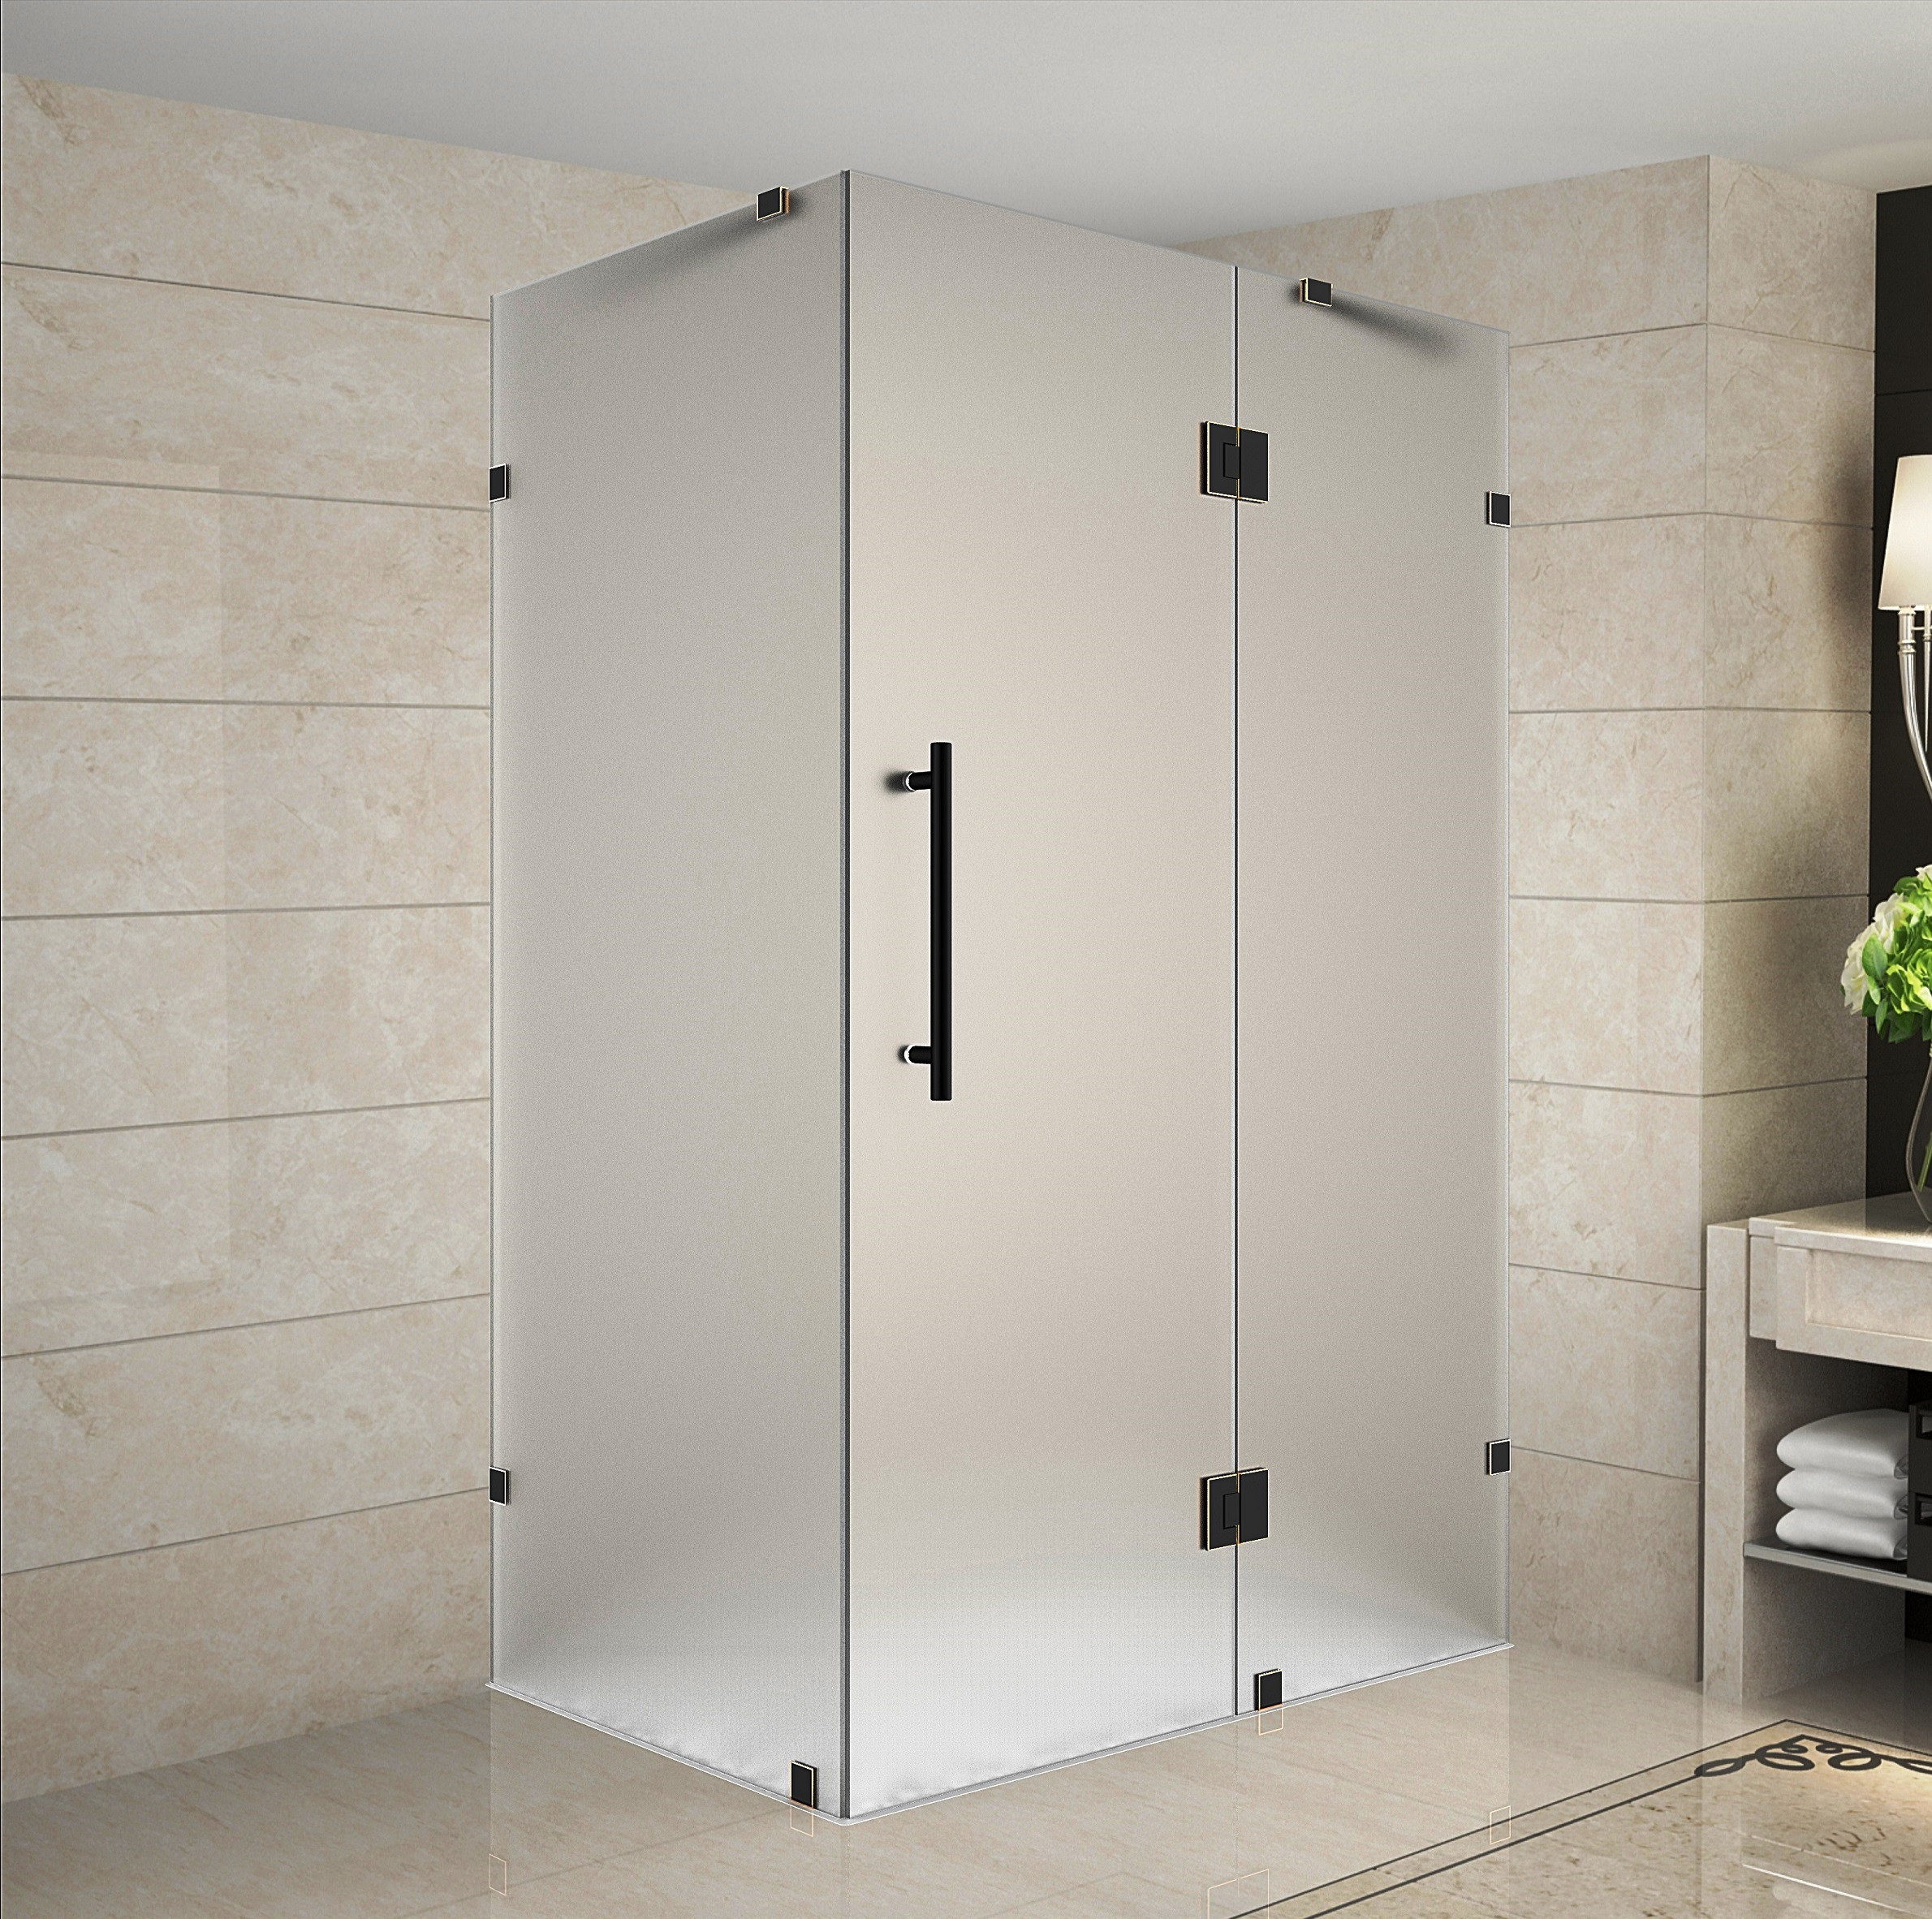 Aston Global SEN987F-CH-3434-10 Avalux Completely Frameless Frosted Glass Shower Enclosure In Chrome